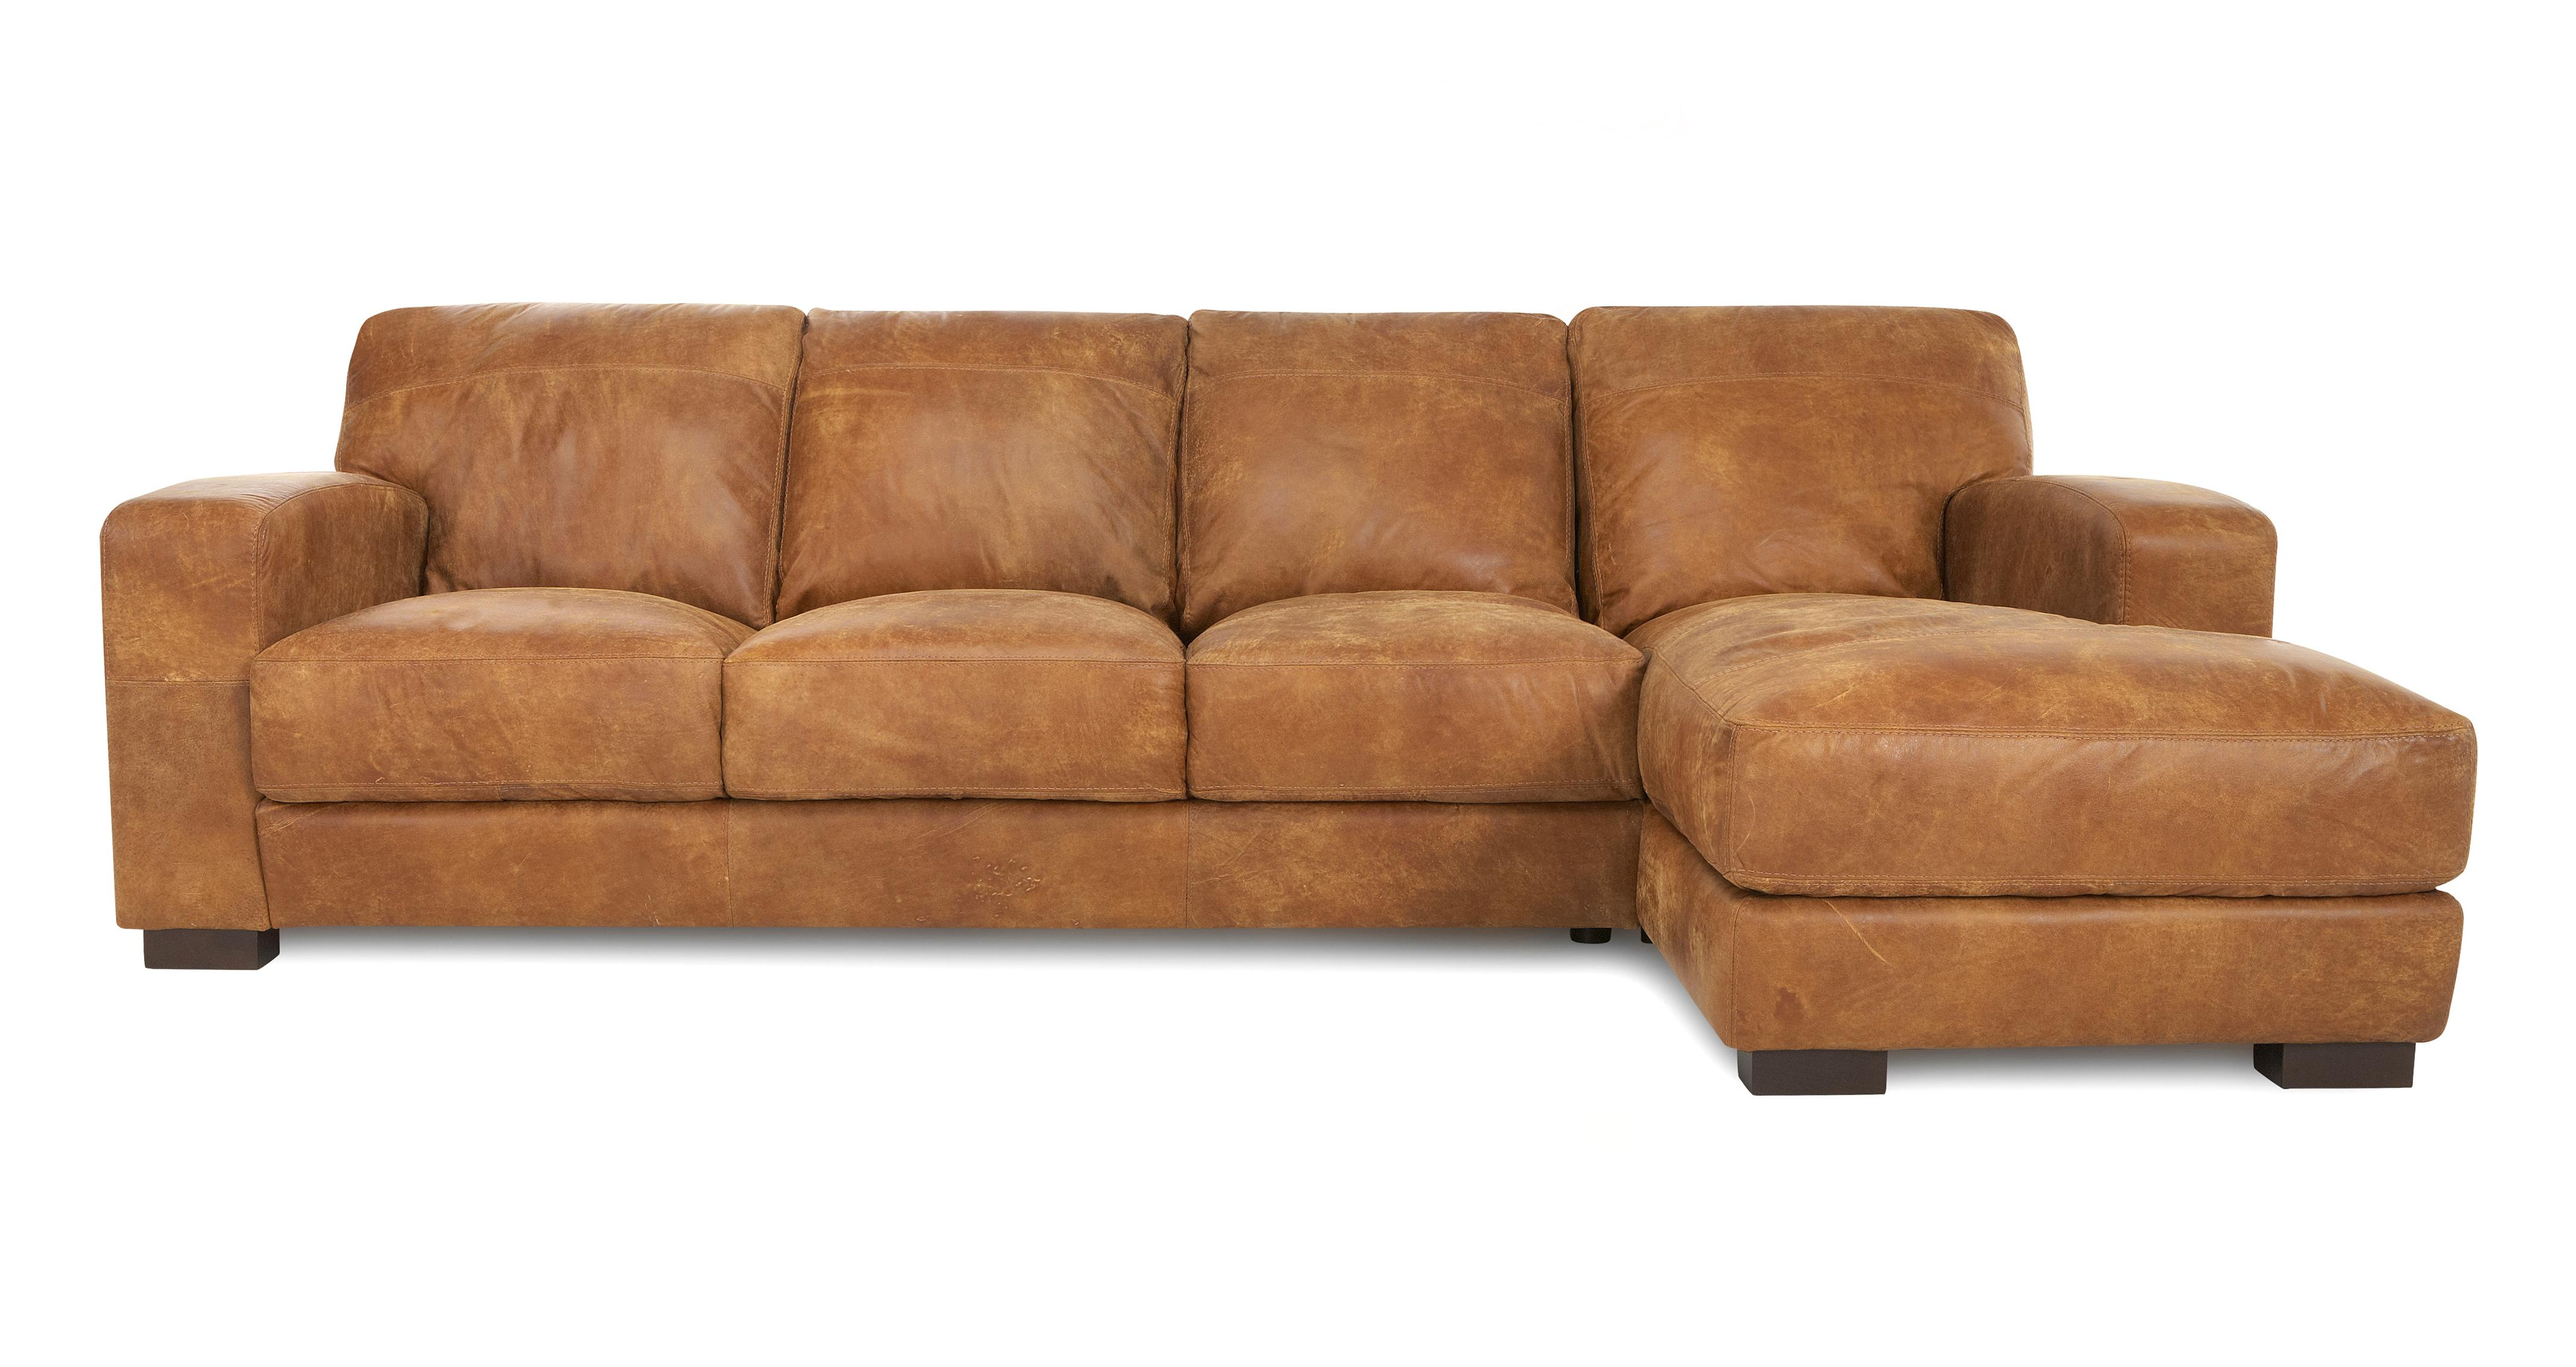 Caesar large right hand facing chaise end sofa outback dfs for Chaise end sofas